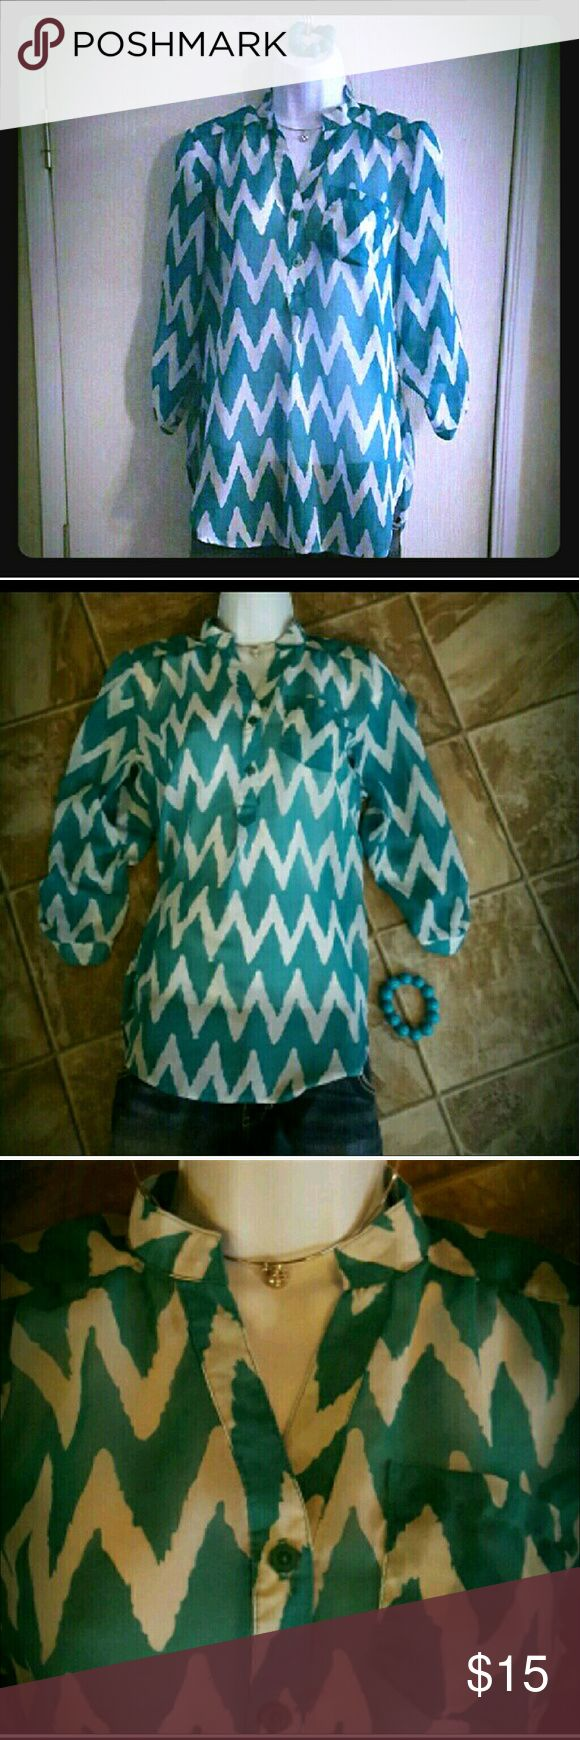 Chevron Shirt Loose Flowy Turquoise Top Chevron Shirt Loose & Flowy. Brand: Rue 21. Tag says small, but could also fit a medium. Never worn.   Smoke free home. I will gladly bundle items to give you a discount! The more you buy, the cheaper I can let everything go!   Chevron Shirt Loose Flowy Turquoise Top Rue 21 Tops Button Down Shirts